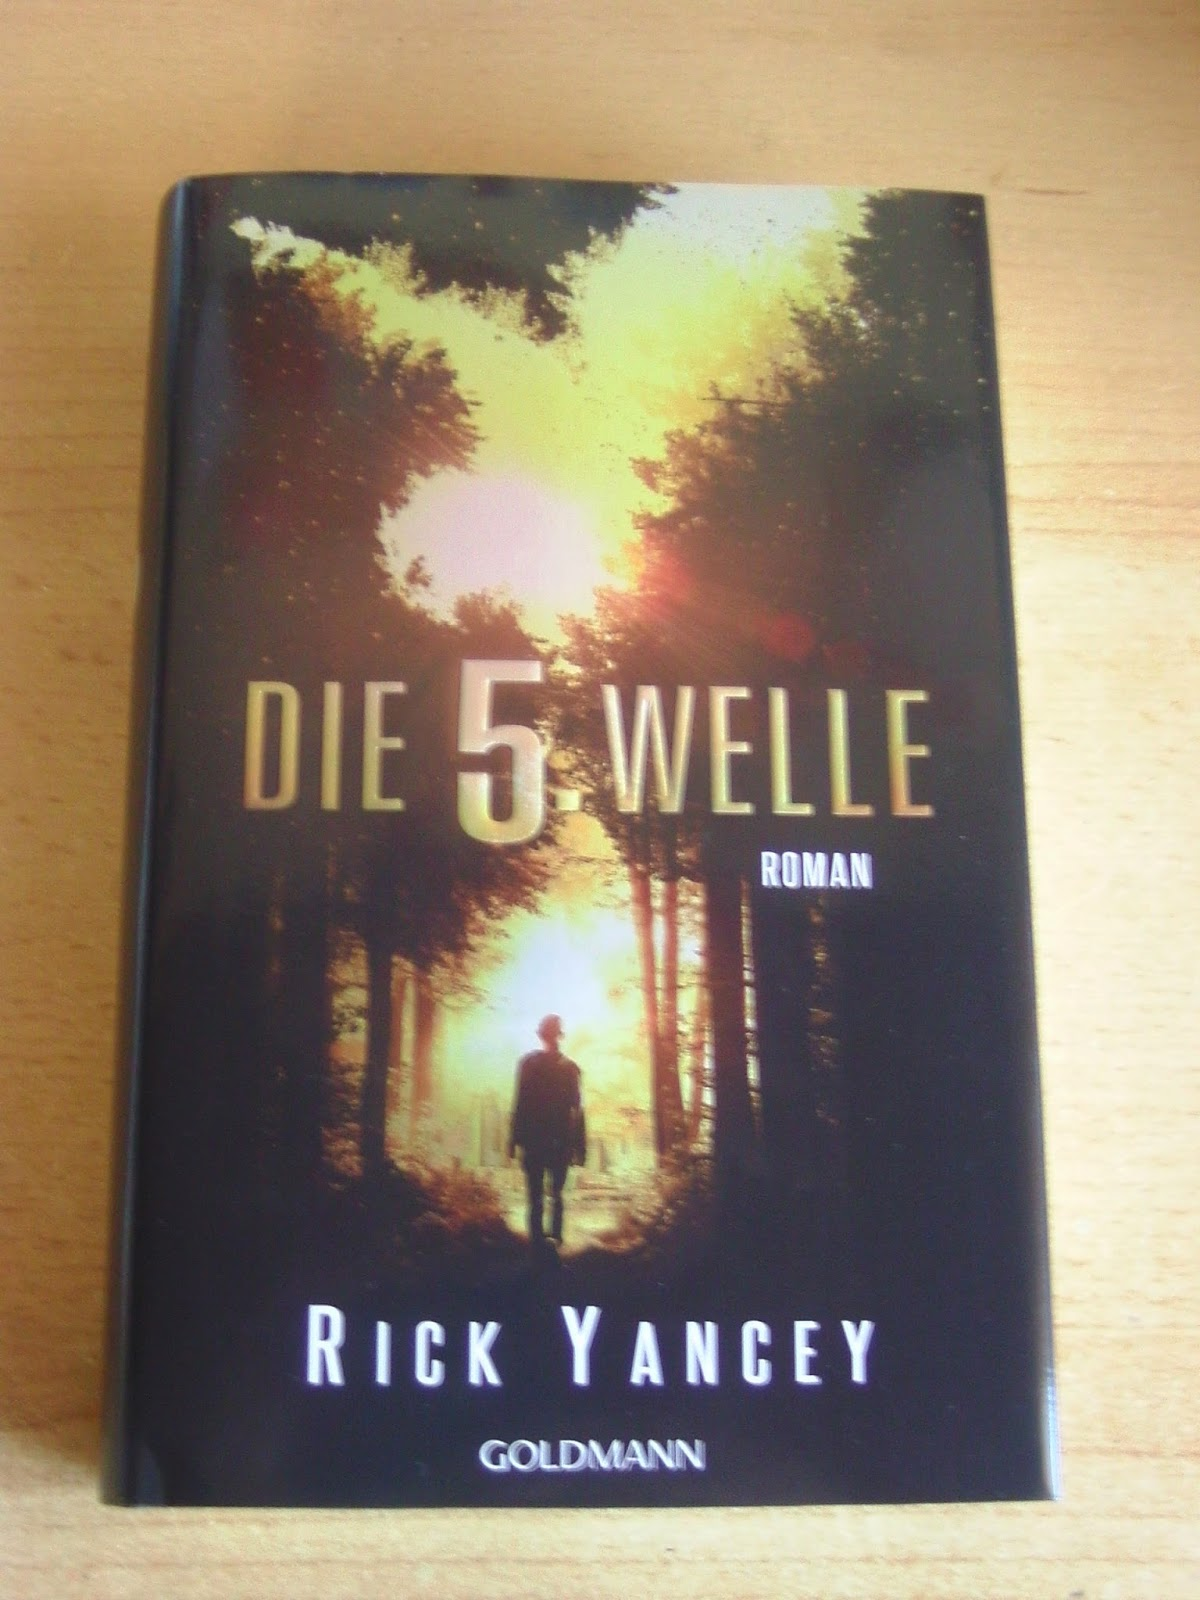 http://www.amazon.de/Die-f%C3%BCnfte-Welle-Rick-Yancey/dp/3442313341/ref=cm_cr_pr_product_top